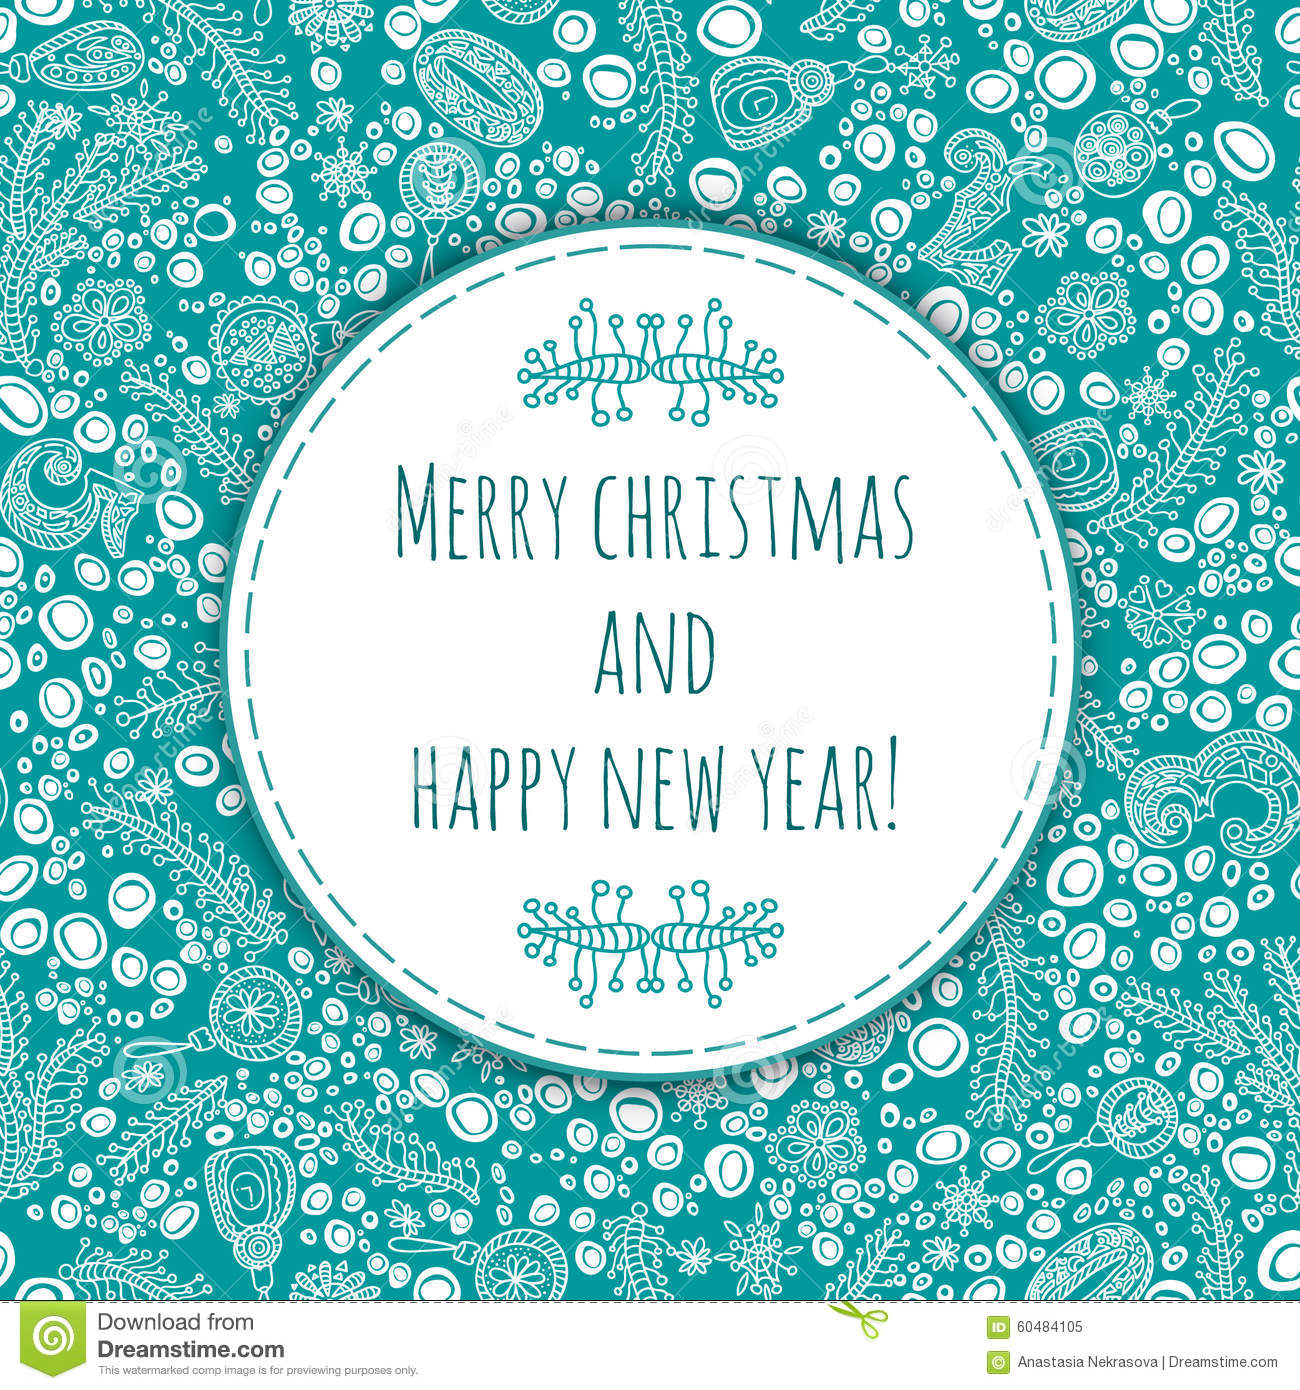 beautiful and gentle greeting happy new year and merry christmas christmas card new year